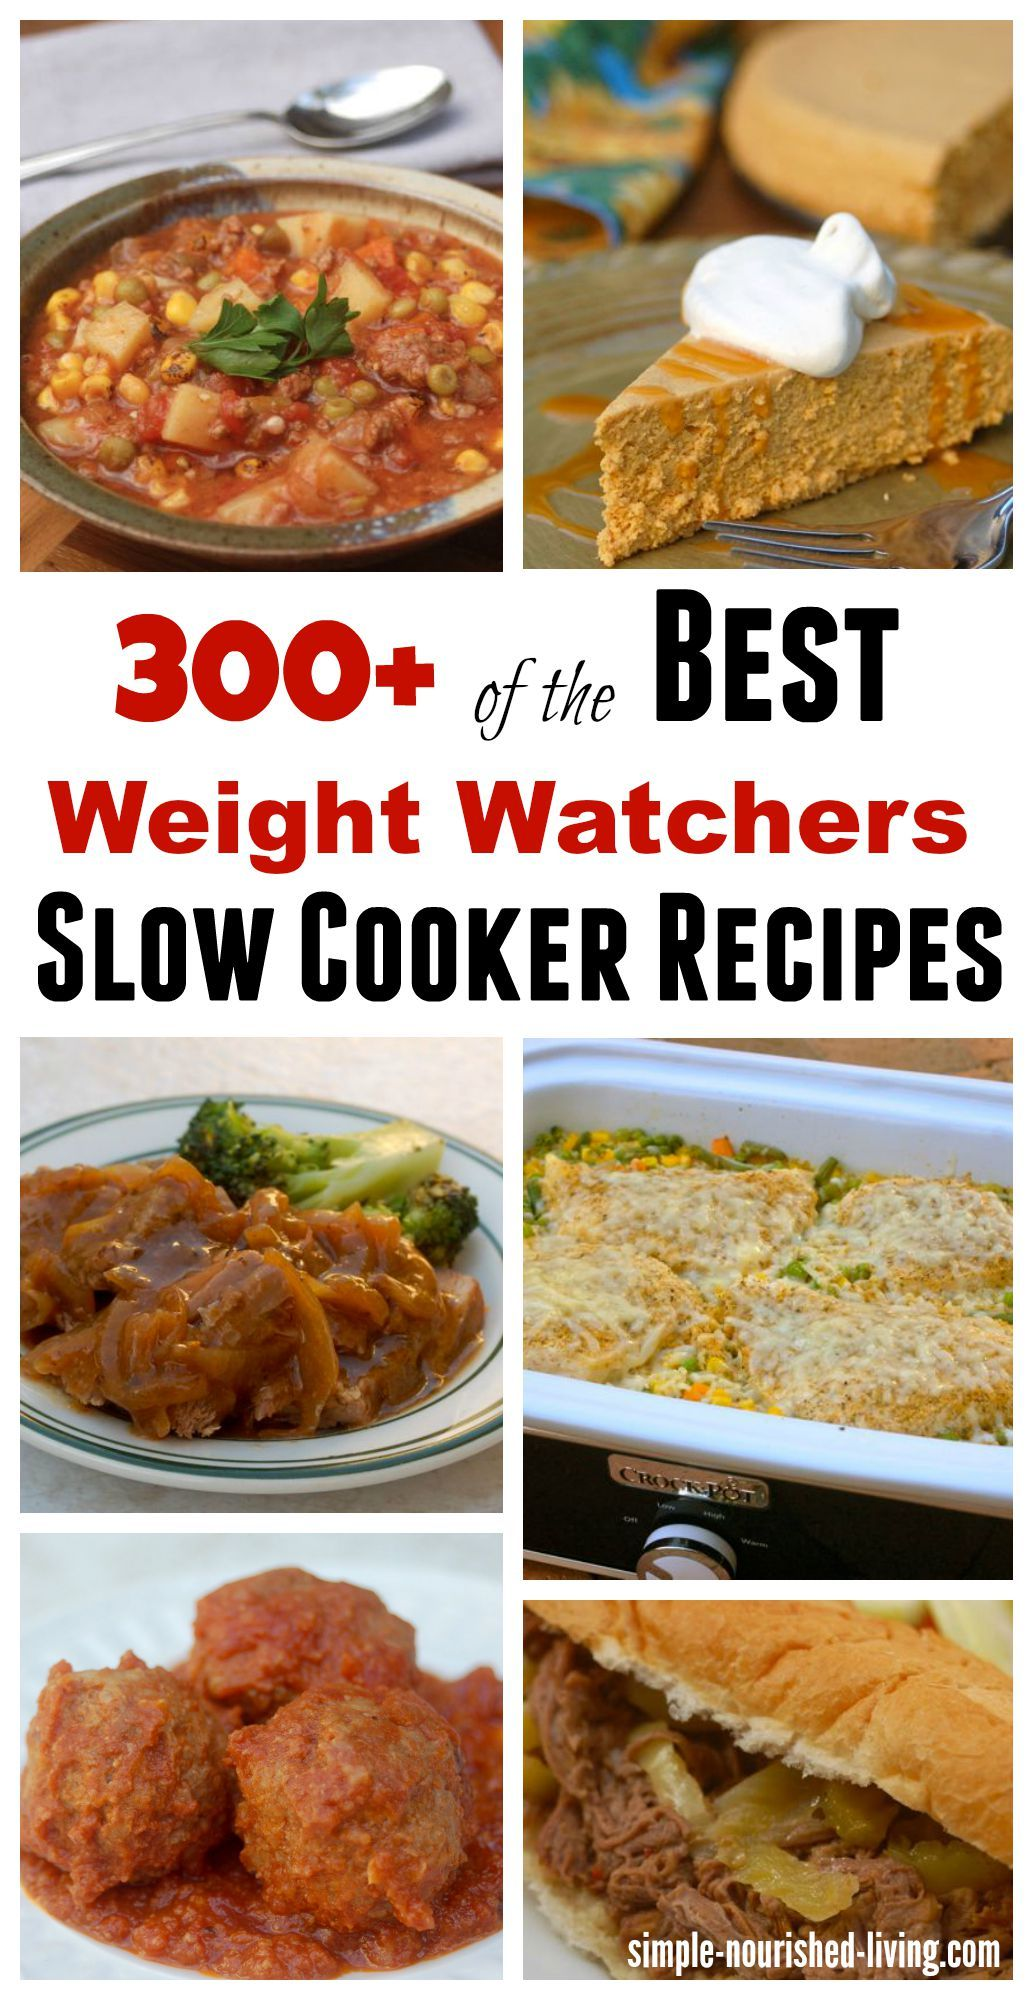 300 of the best weight watchers slow cooker recipes all with 300 of the best weight watchers slow cooker recipes all with calories and points plus forumfinder Images